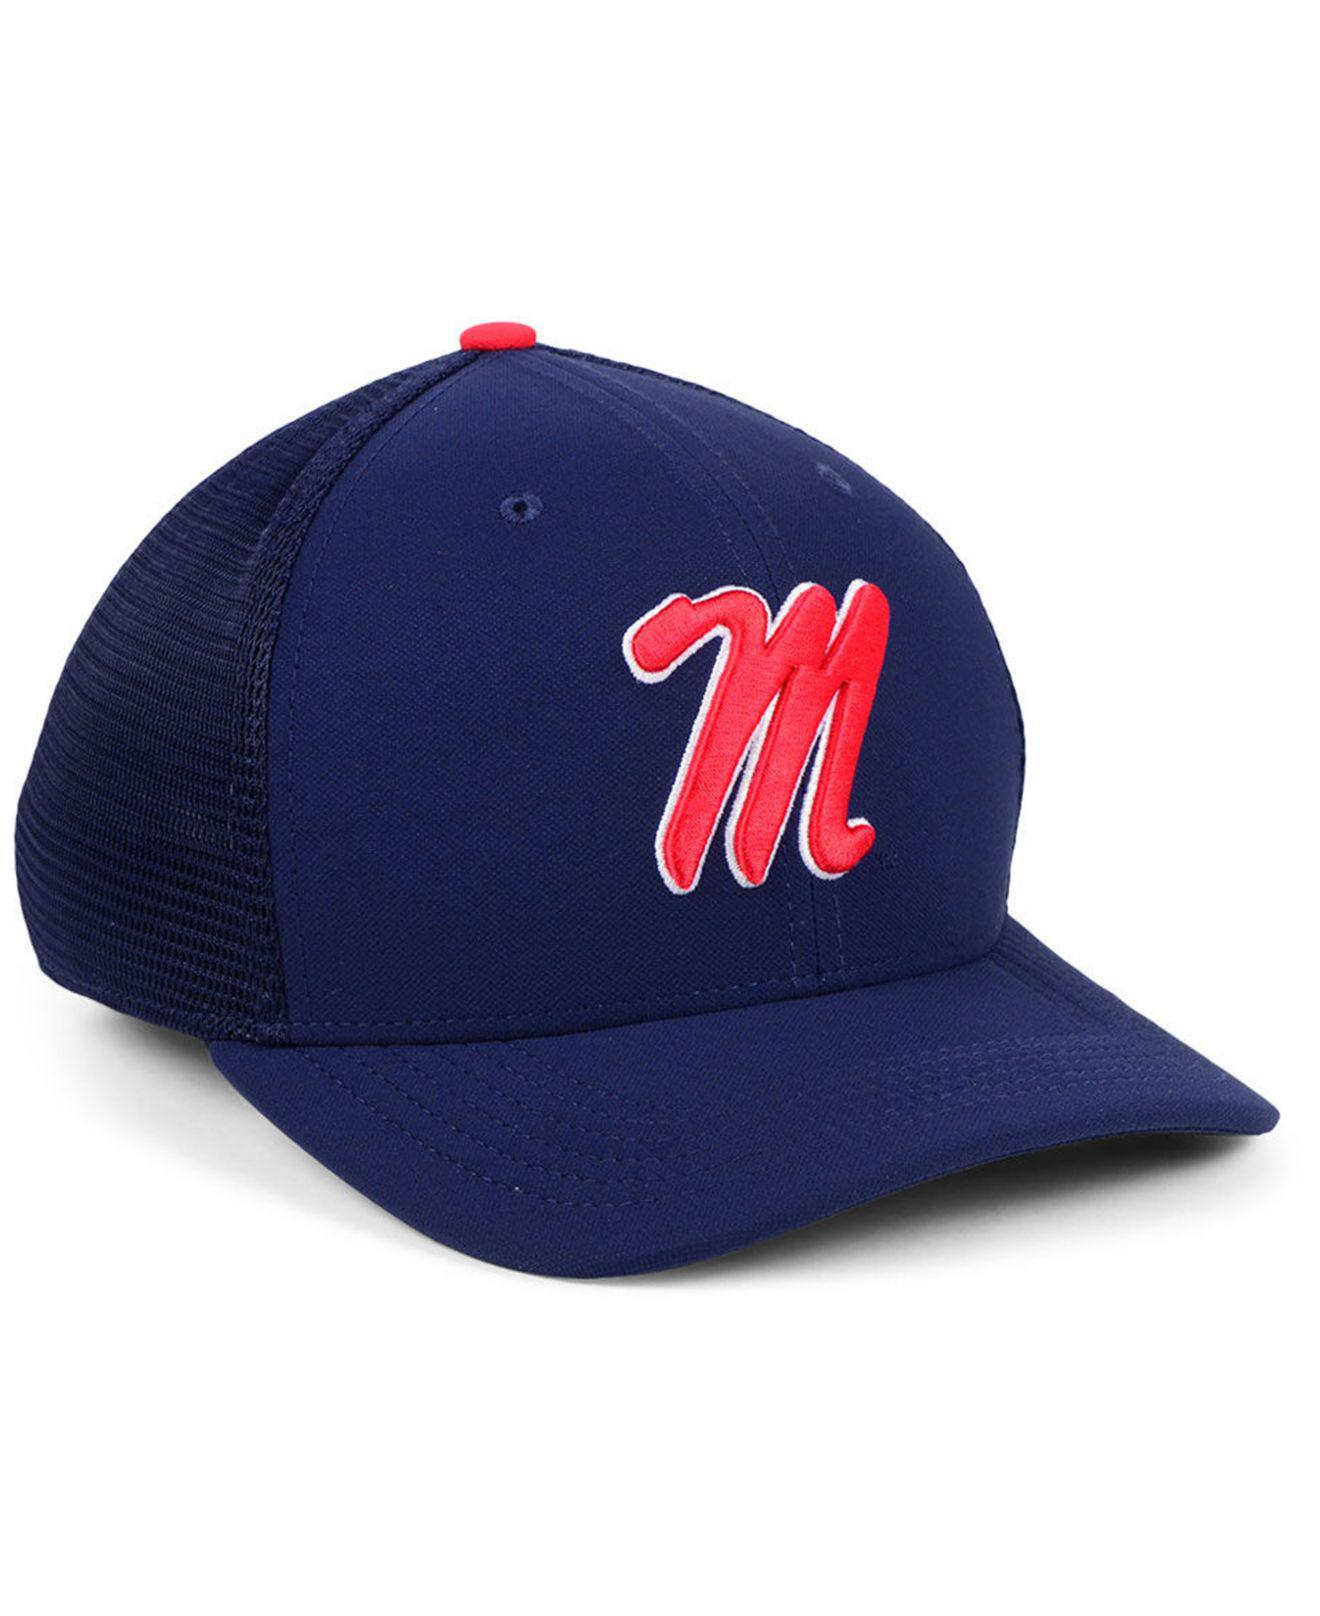 best website f23fa 03b0b ... low cost sale nike blue ole miss rebels col aro swooshflex cap for men  lyst.